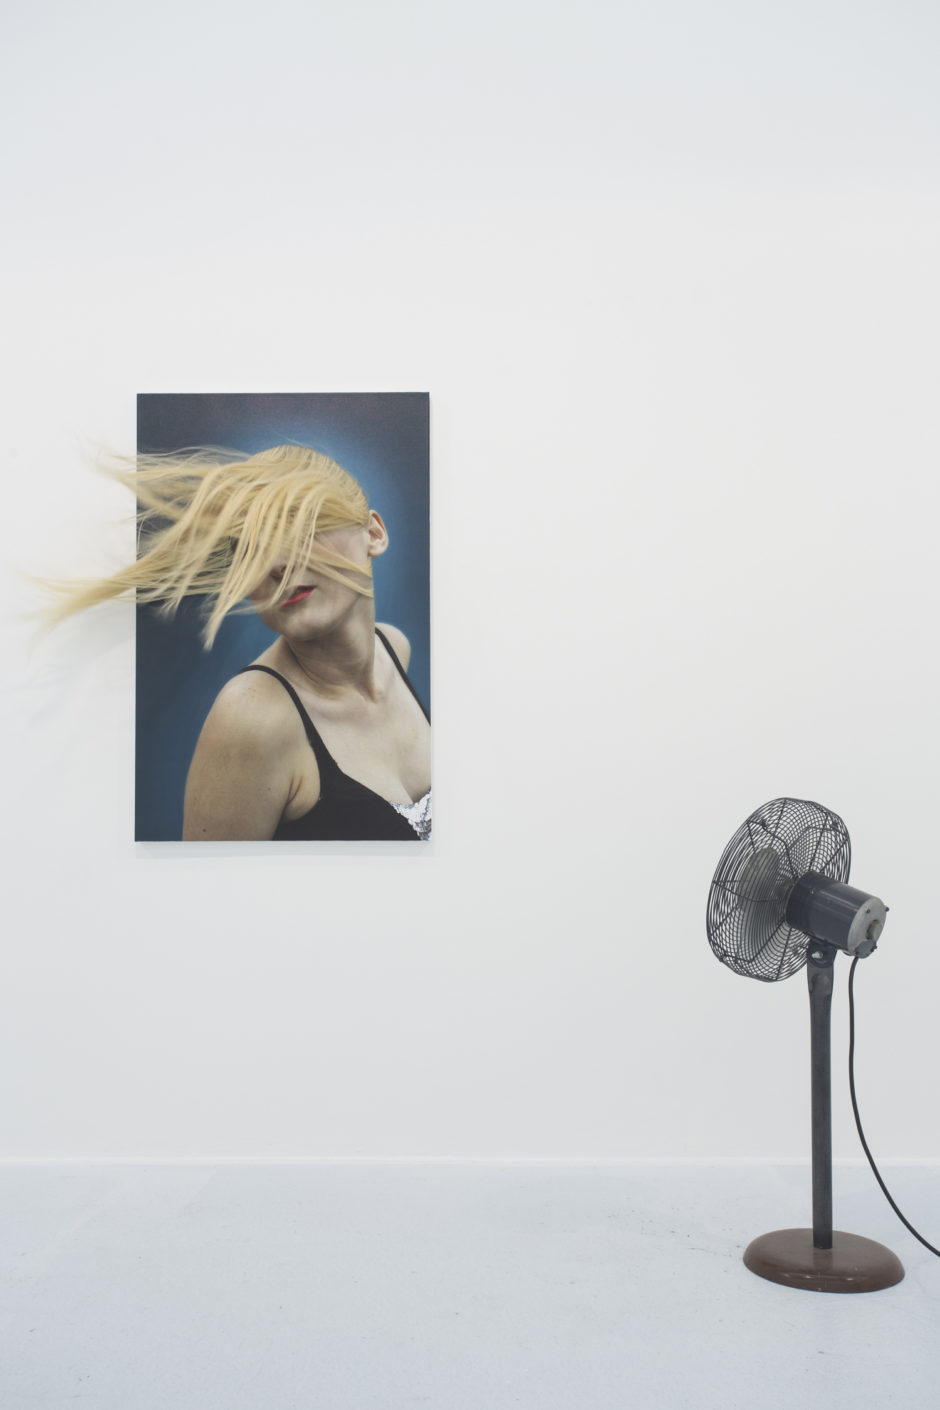 Adam Parker Smith, Crush, 2012, Printed photo on canvas, human hair, fan, 60 x 40 inches.